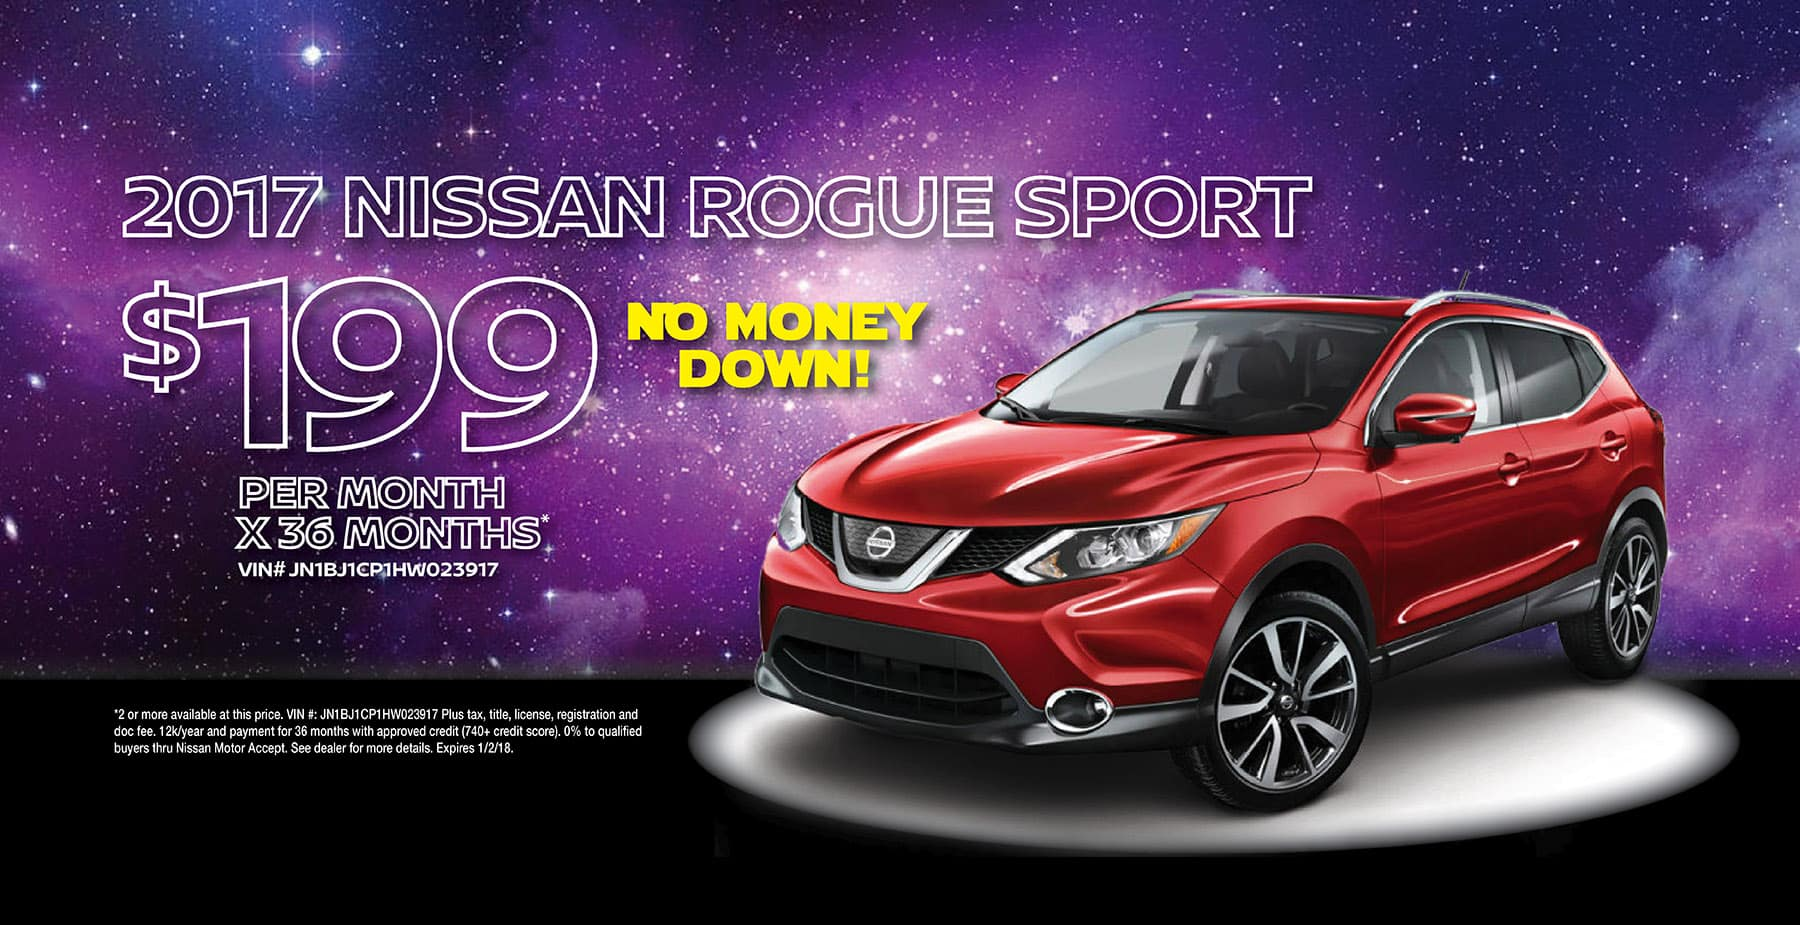 2017 Nissan Rogue Sport December Holiday Sale at Star Nissan